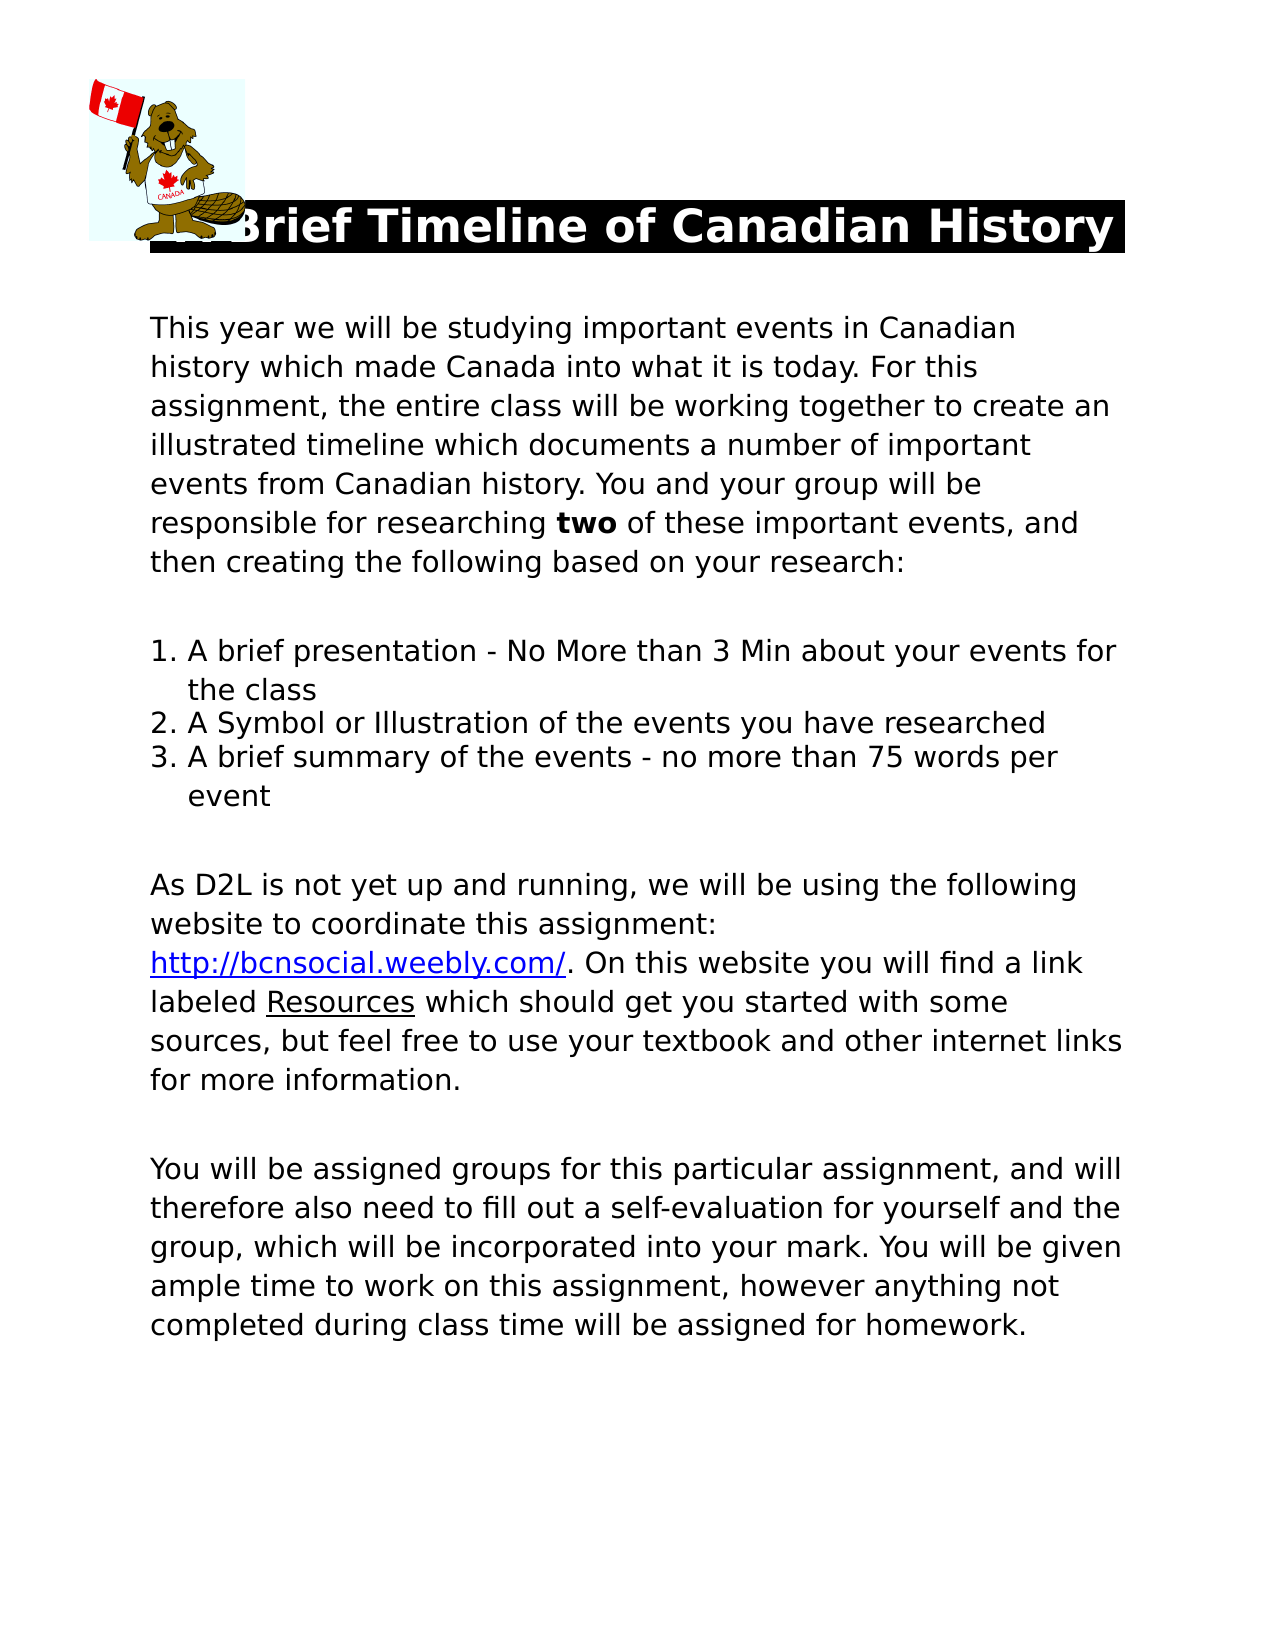 Historical Timeline Assignment Resource Preview